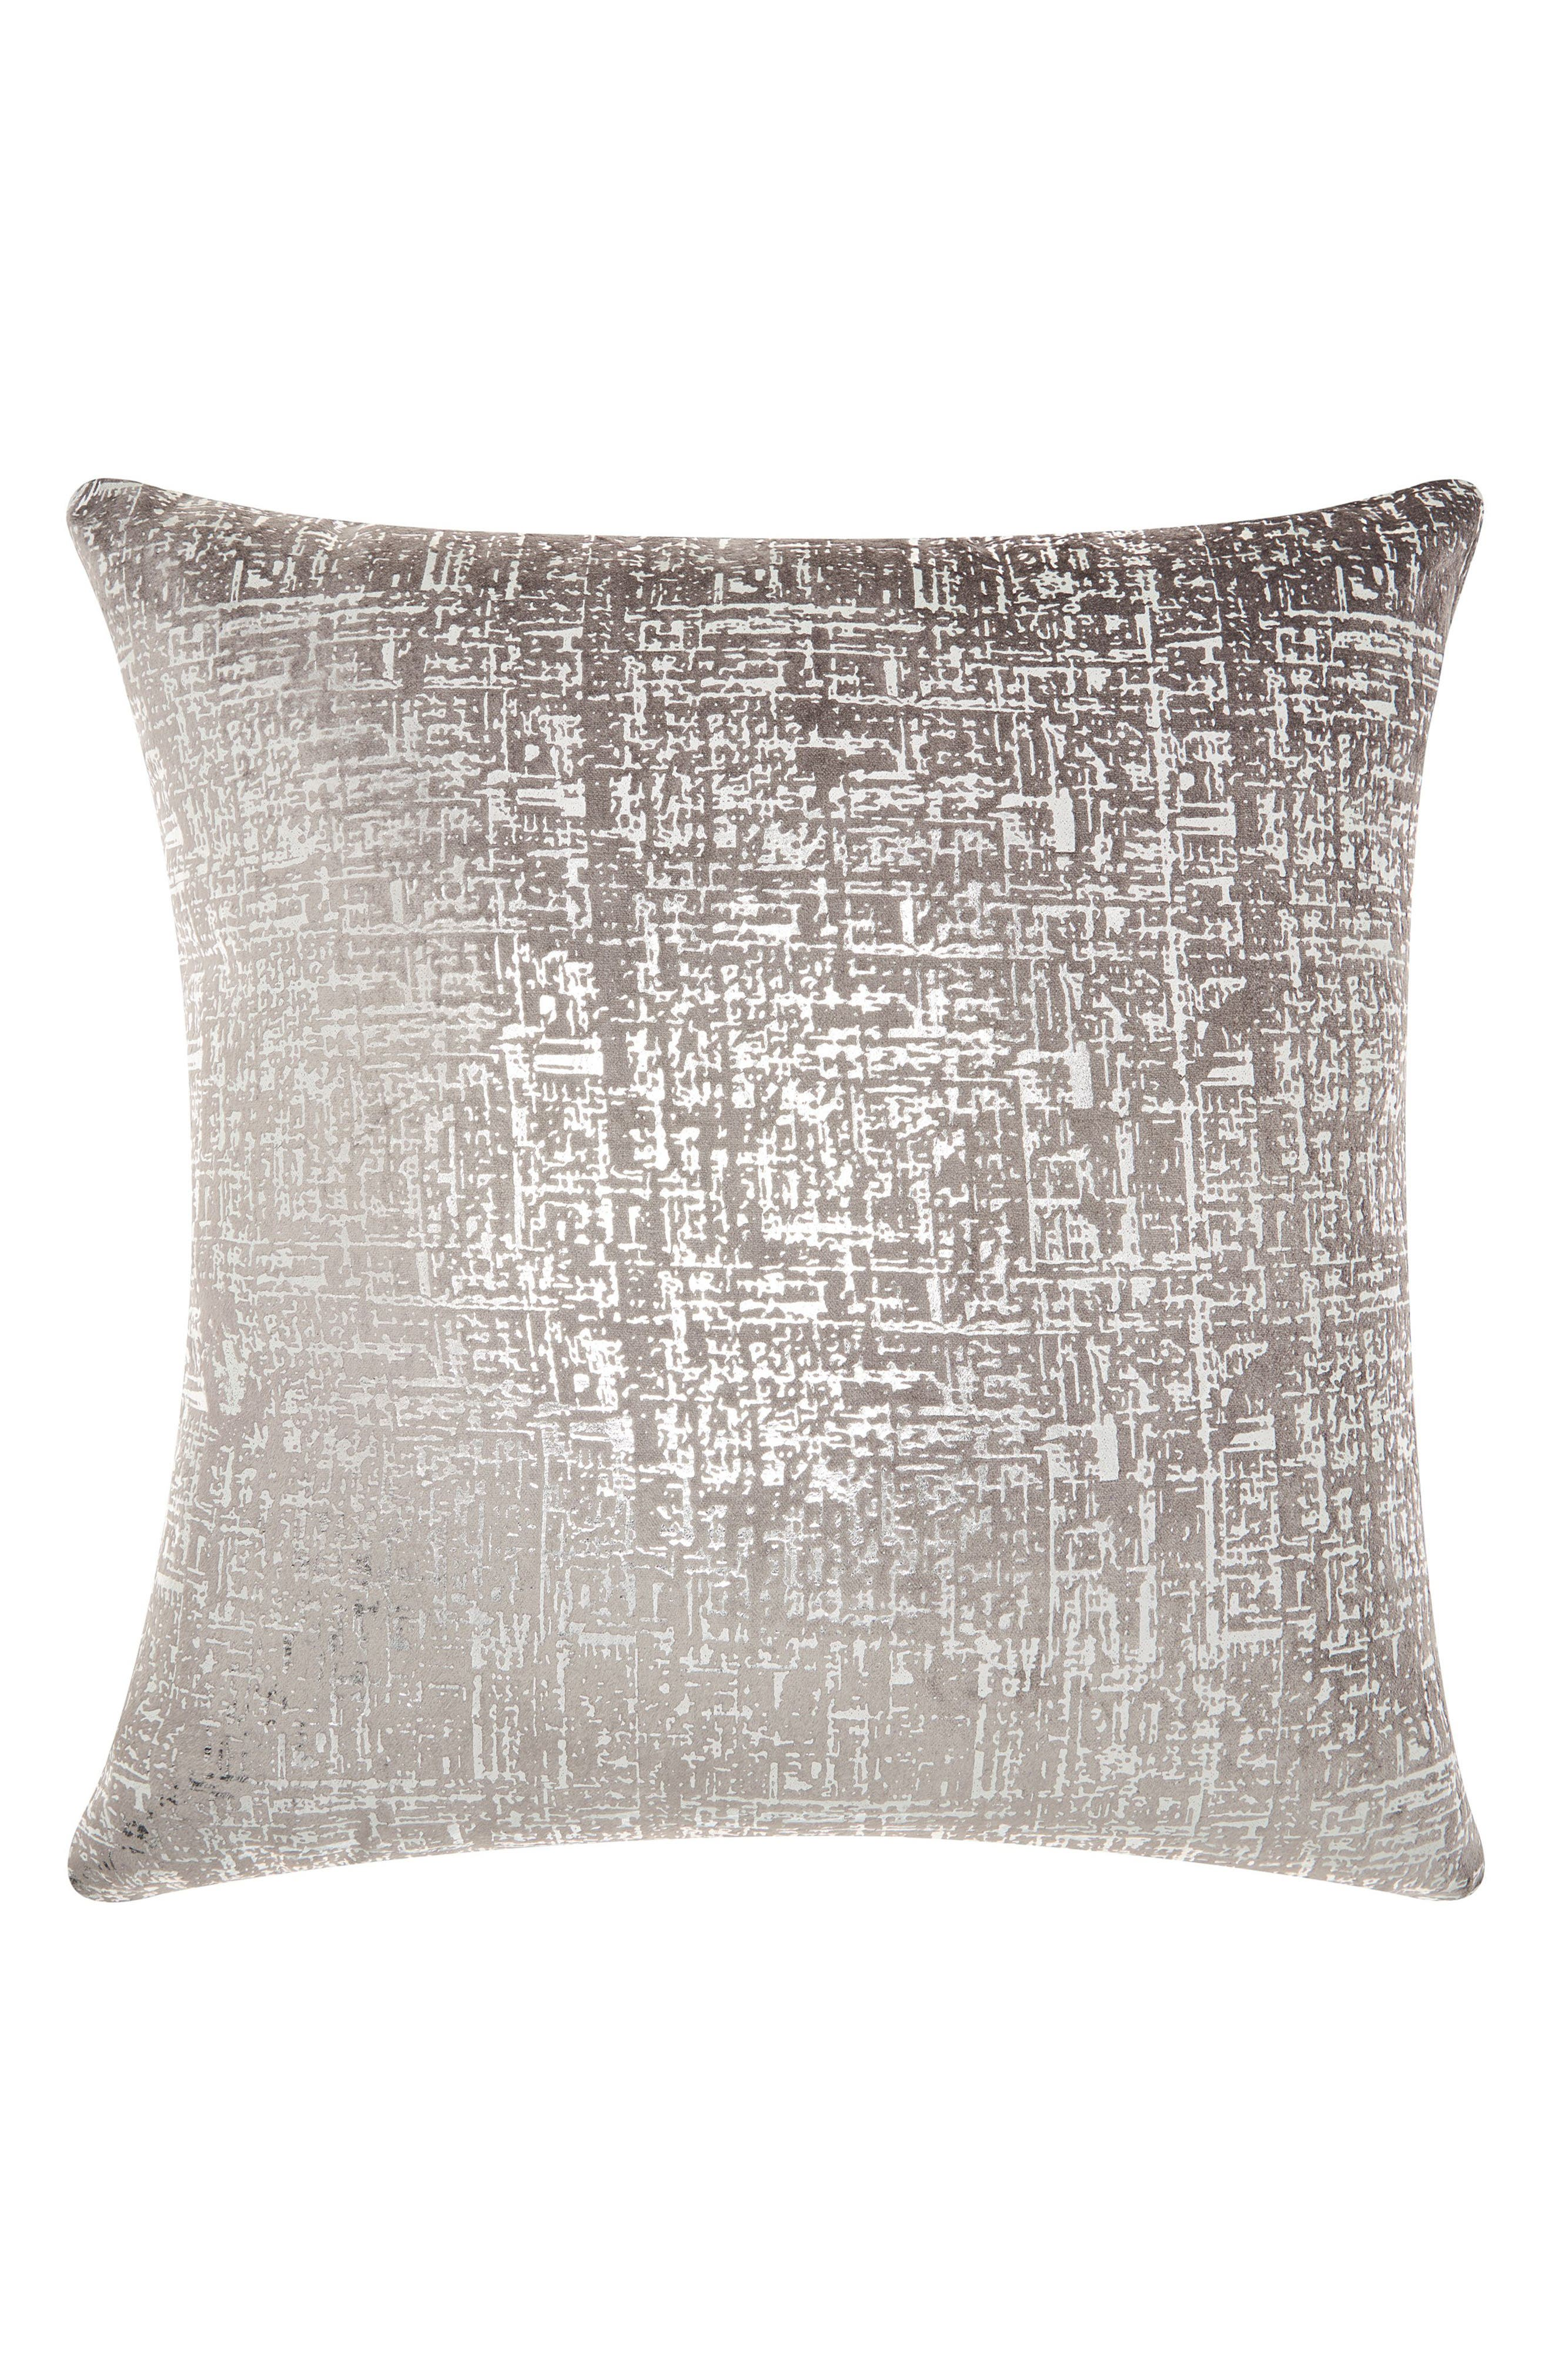 Alternate Image 1 Selected - Mina Victory Distressed Velvet Accent Pillow